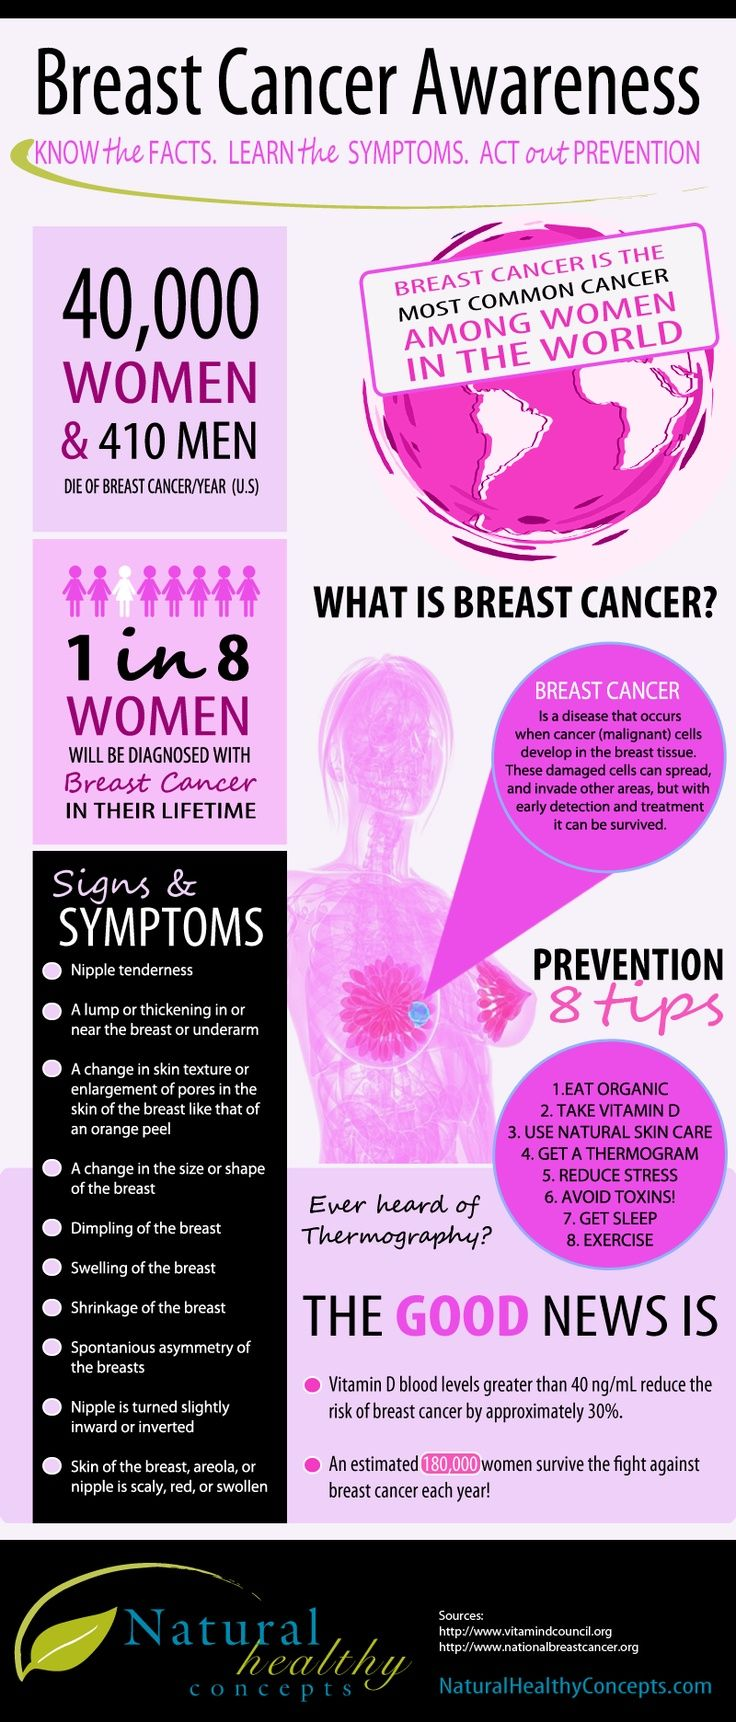 Its Breast Cancer Awareness Month. Know the Fact, Learn the Symptoms, Act Out Prevention. #breastcancer #health #infographic via bittopper.com